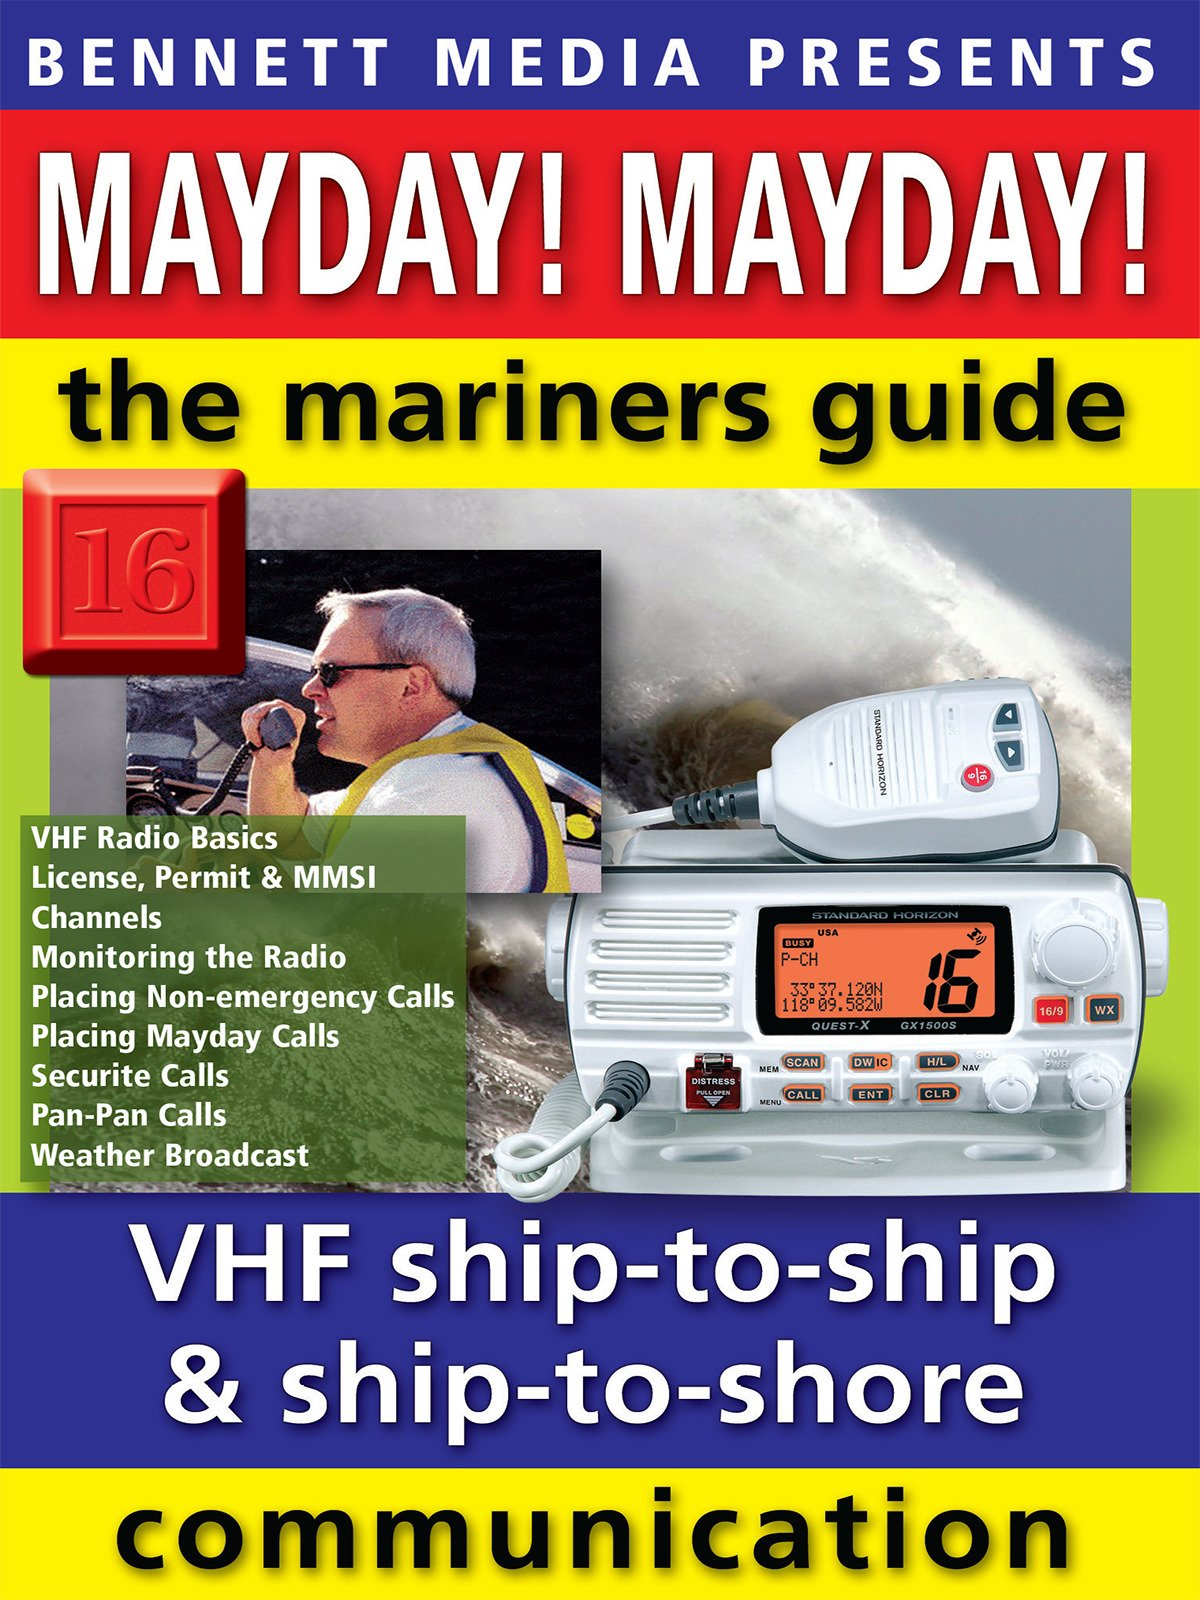 Mayday! Mayday! The Mariners' Guide to VHF Ship-to-Ship & Ship-to-Shore Communication on Amazon Prime Video UK